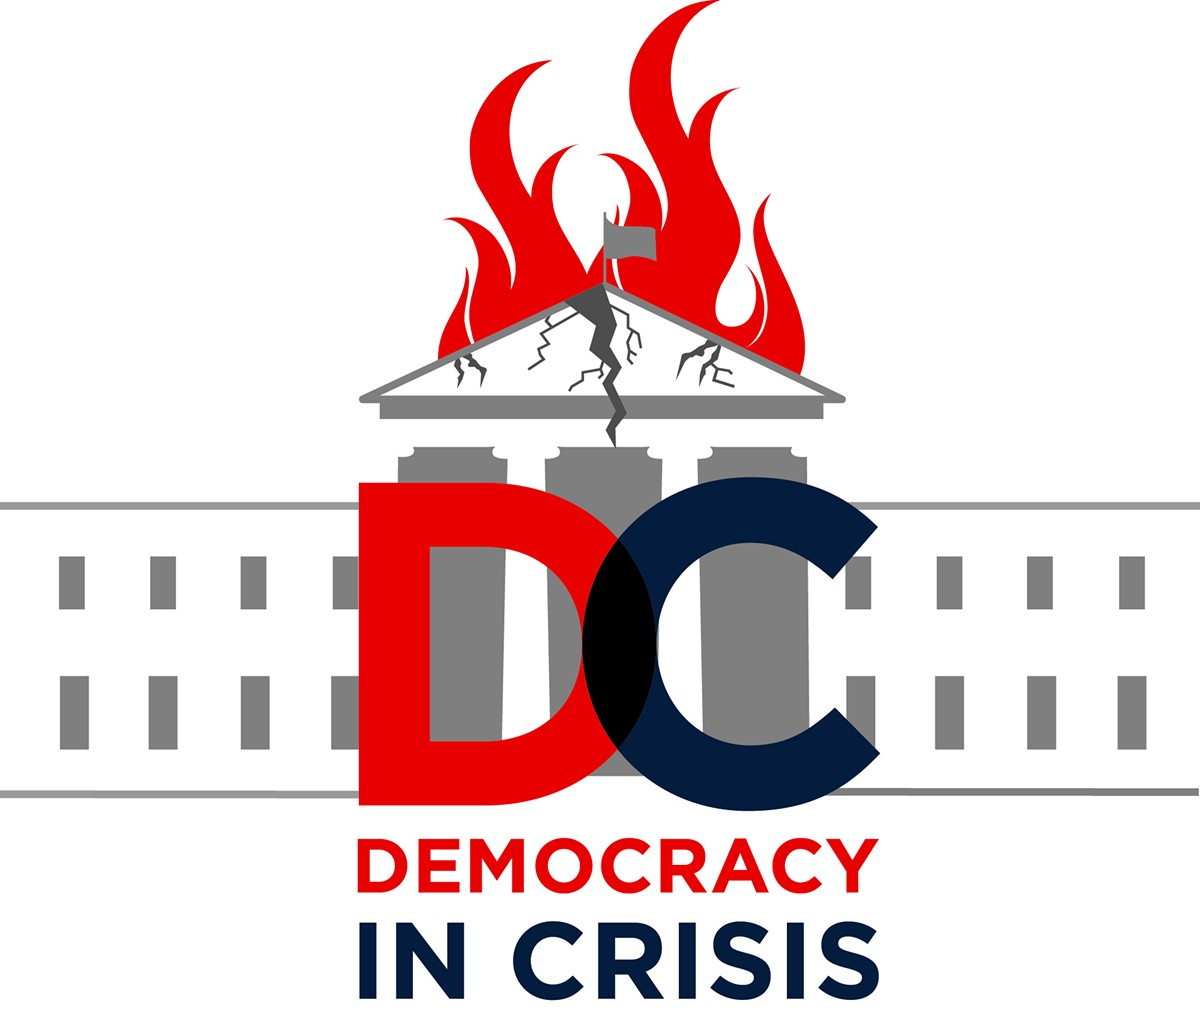 democracy-in-crisis_01_29_17.jpg